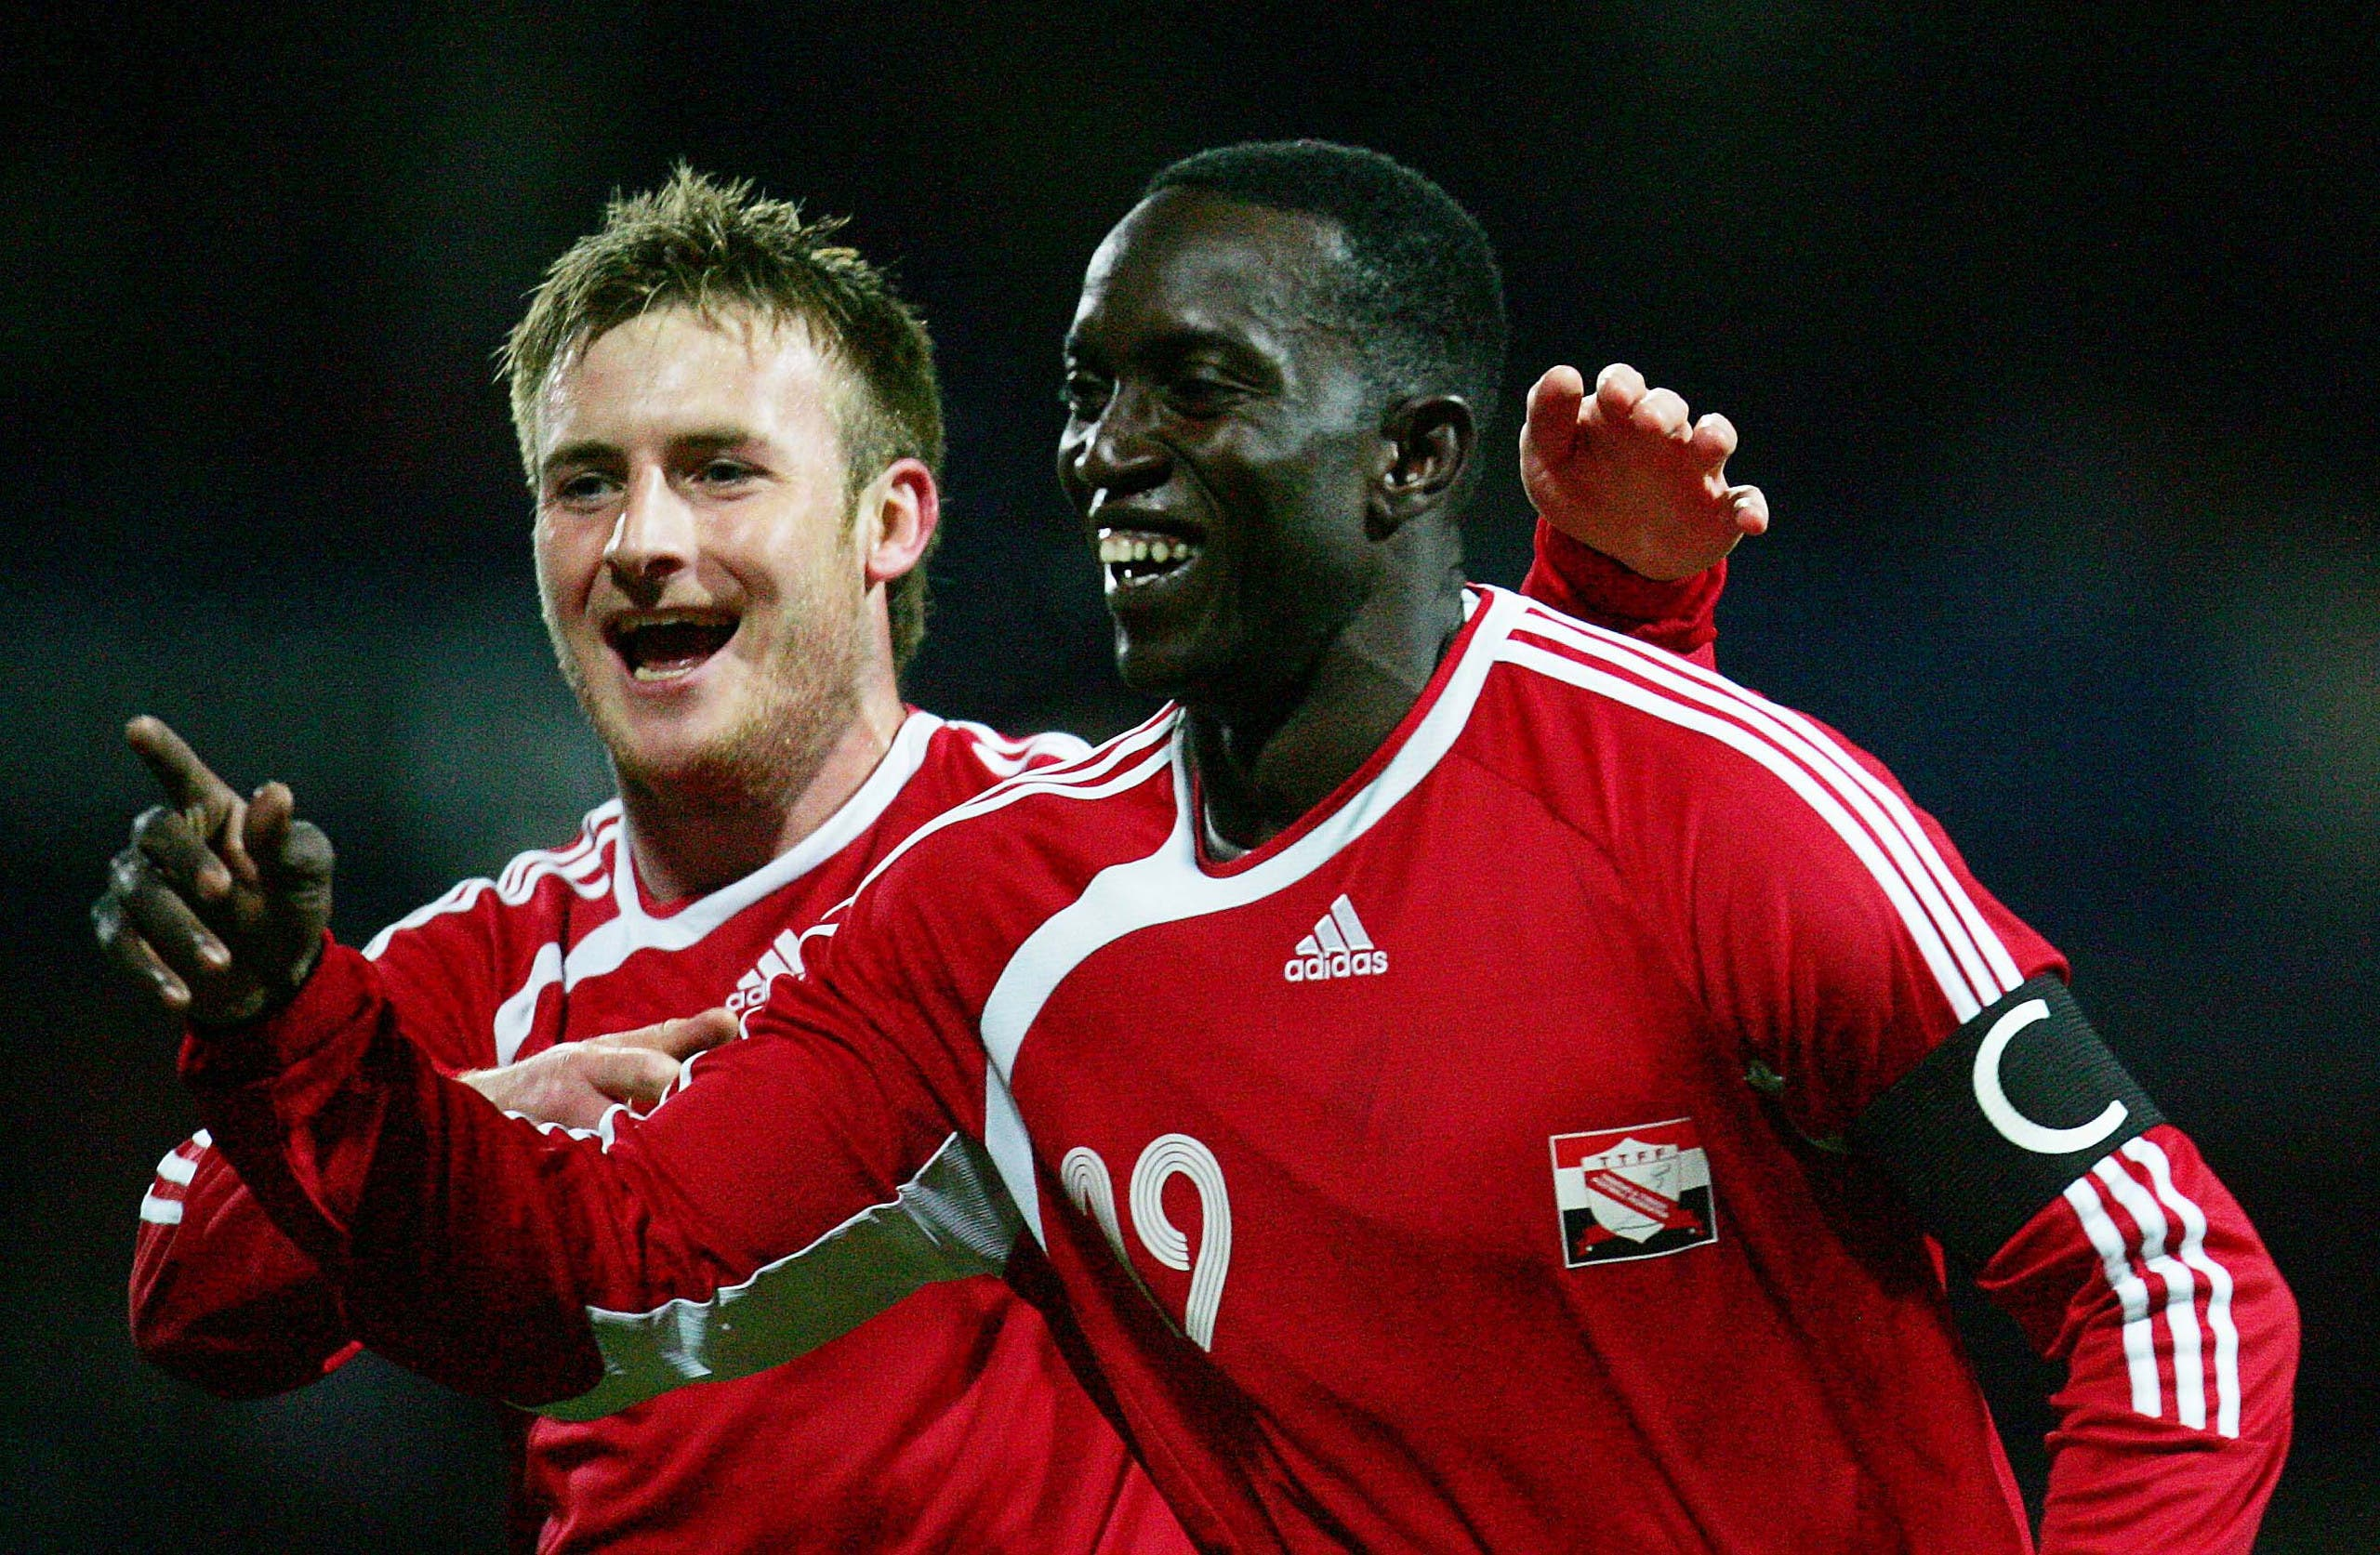 Trinidad and Tobago's Dwight Yorke (R) celebrates his goal with Chris Birchall during their international friendly soccer match against Iceland at Loftus Road, London, February 28, 2006. (Reuters)